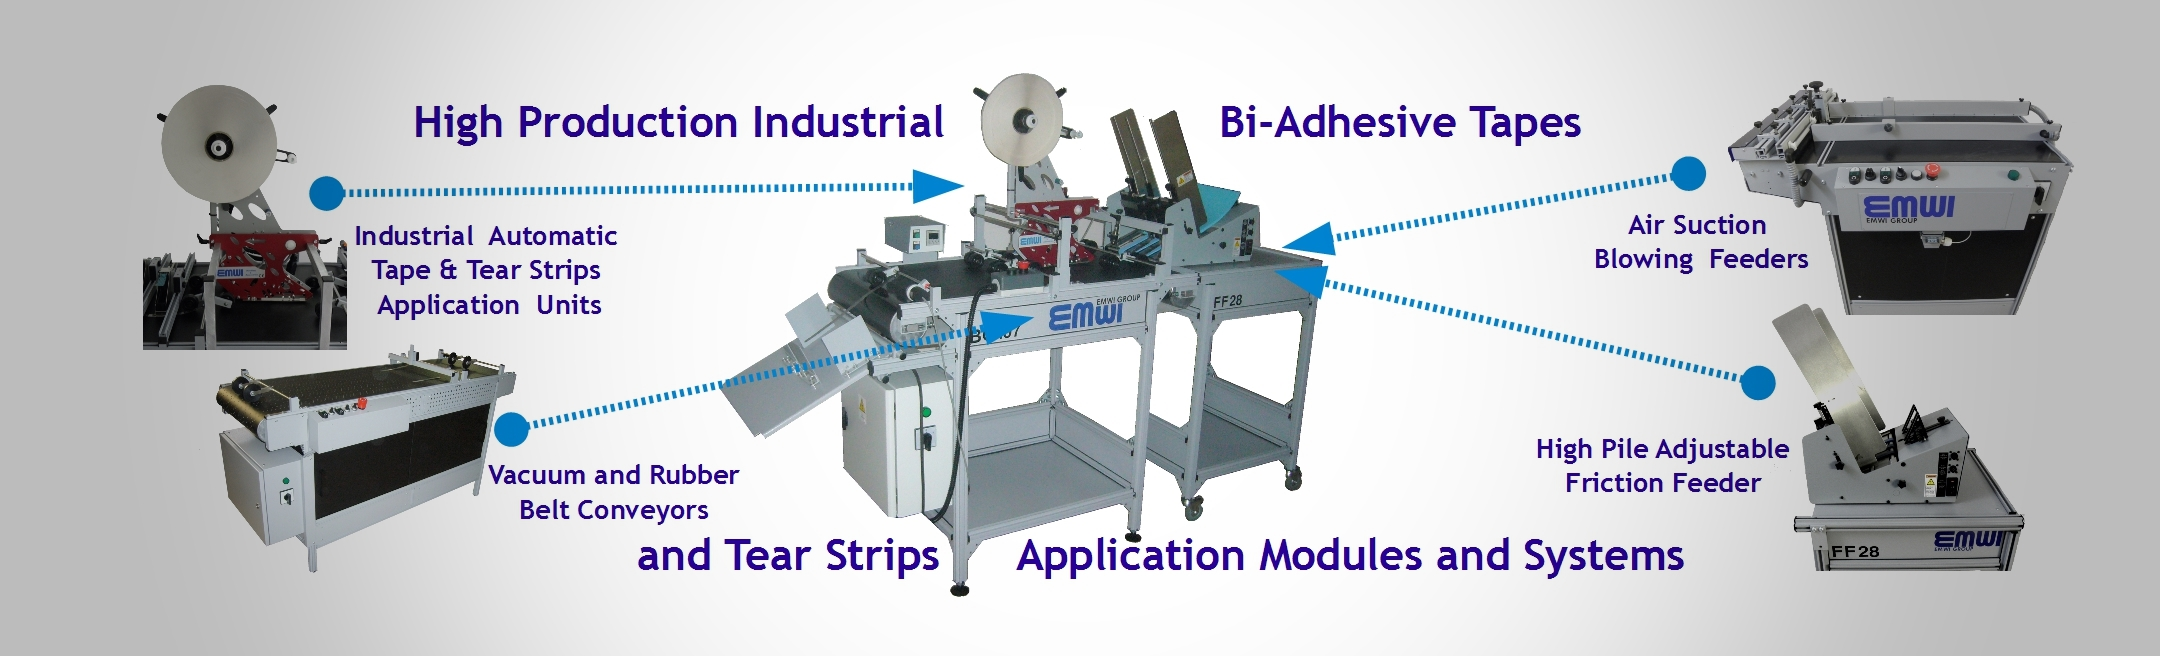 Tape and tear strips application systems industrial